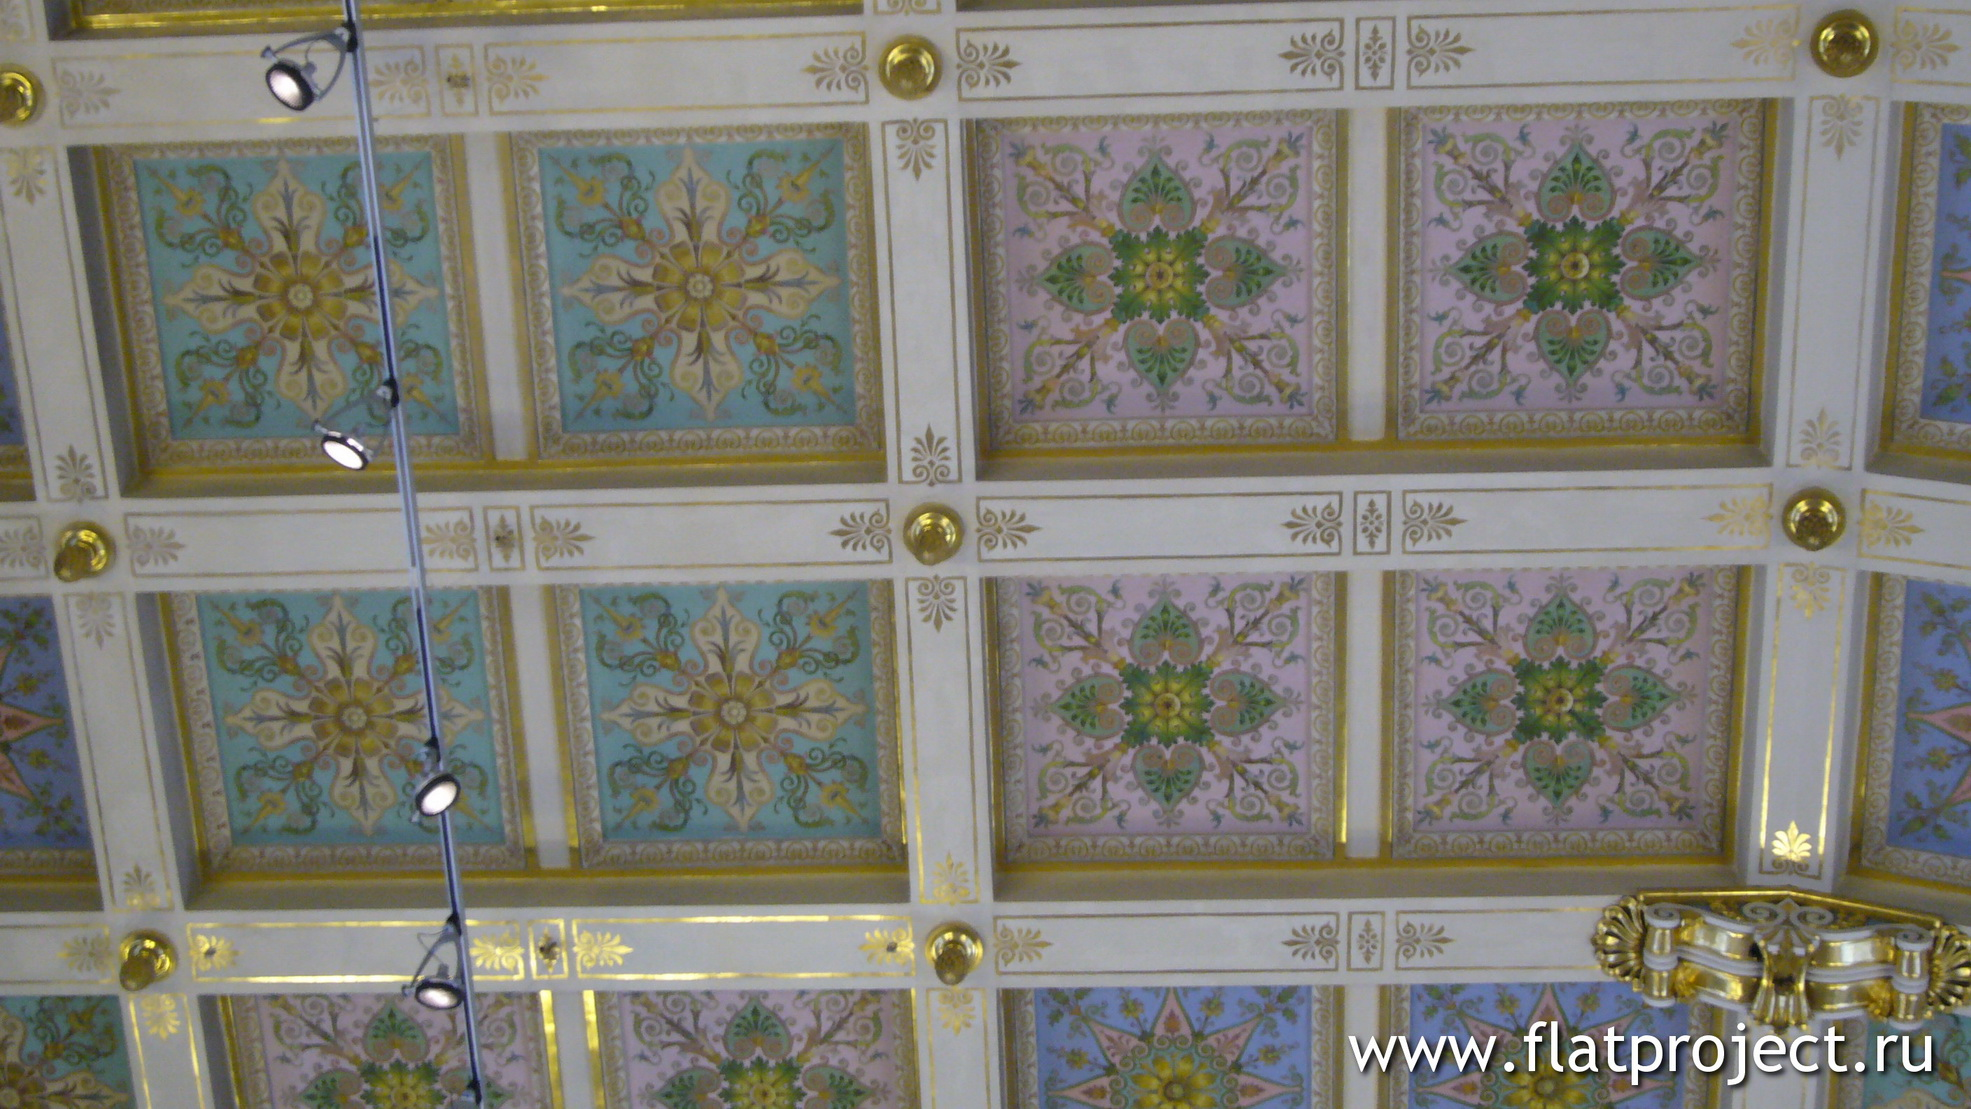 The State Hermitage museum interiors – photo 122